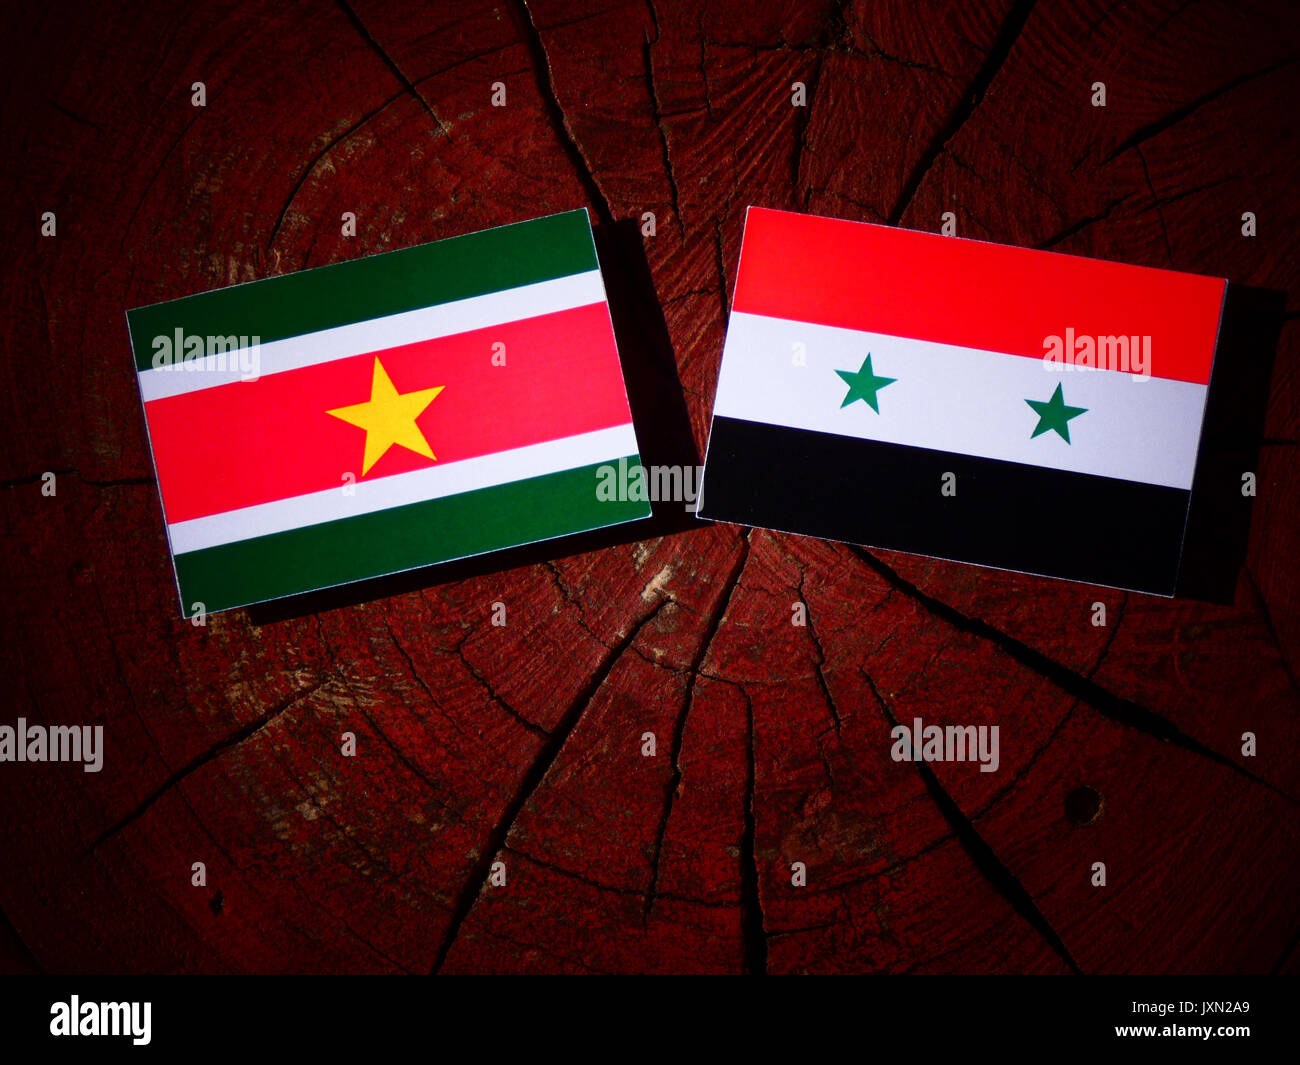 Suriname flag with Syrian flag on a tree stump isolated - Stock Image